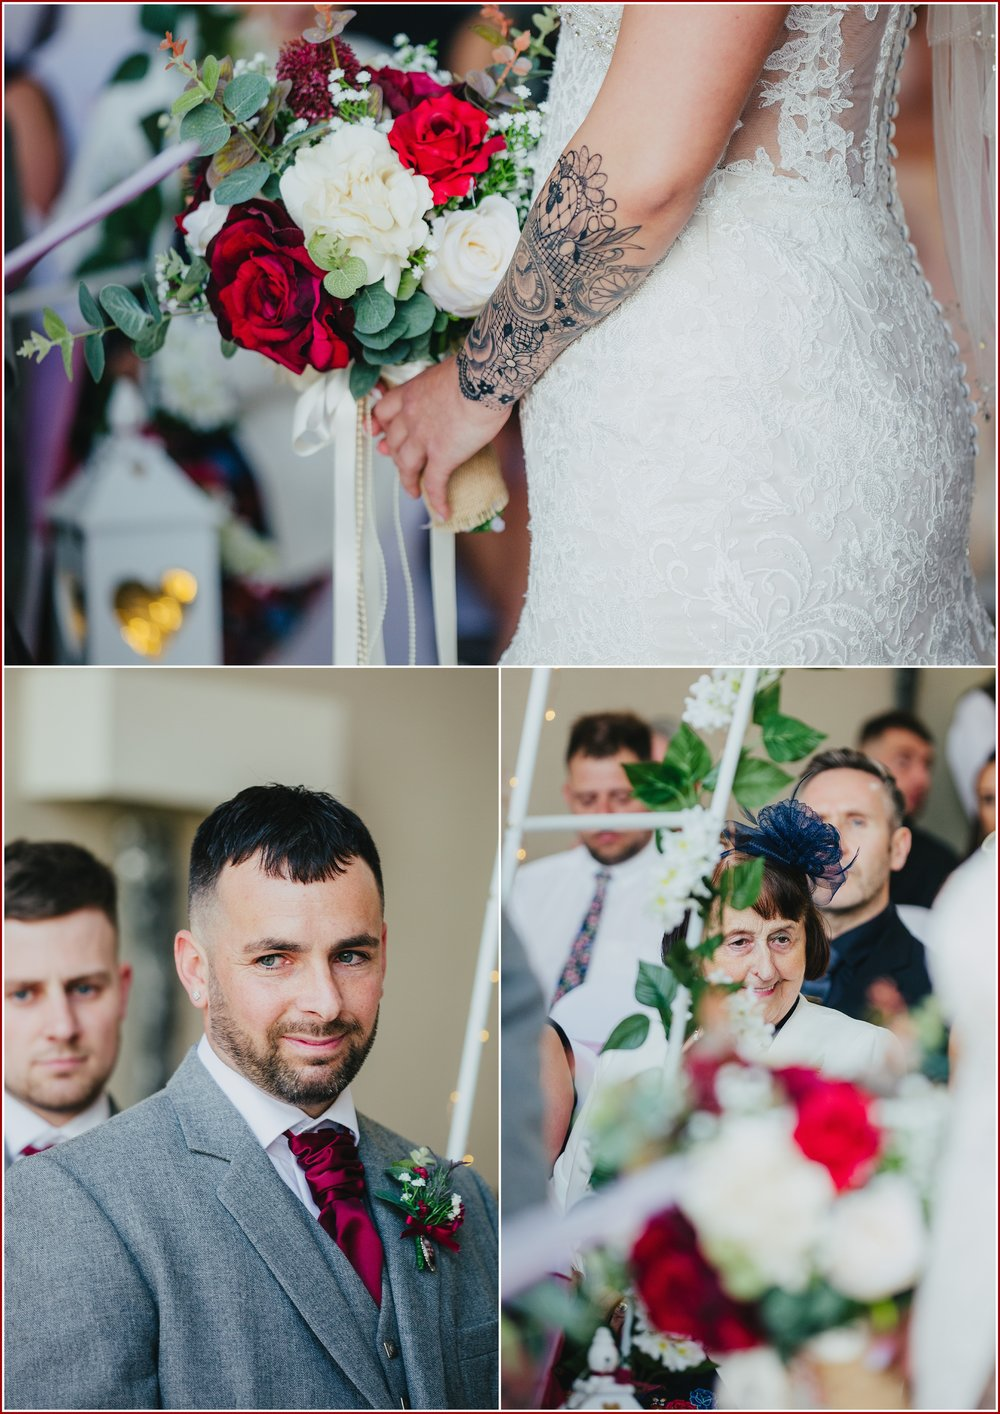 Kirsty_Brown_Wedding_Photography_0079.jpg